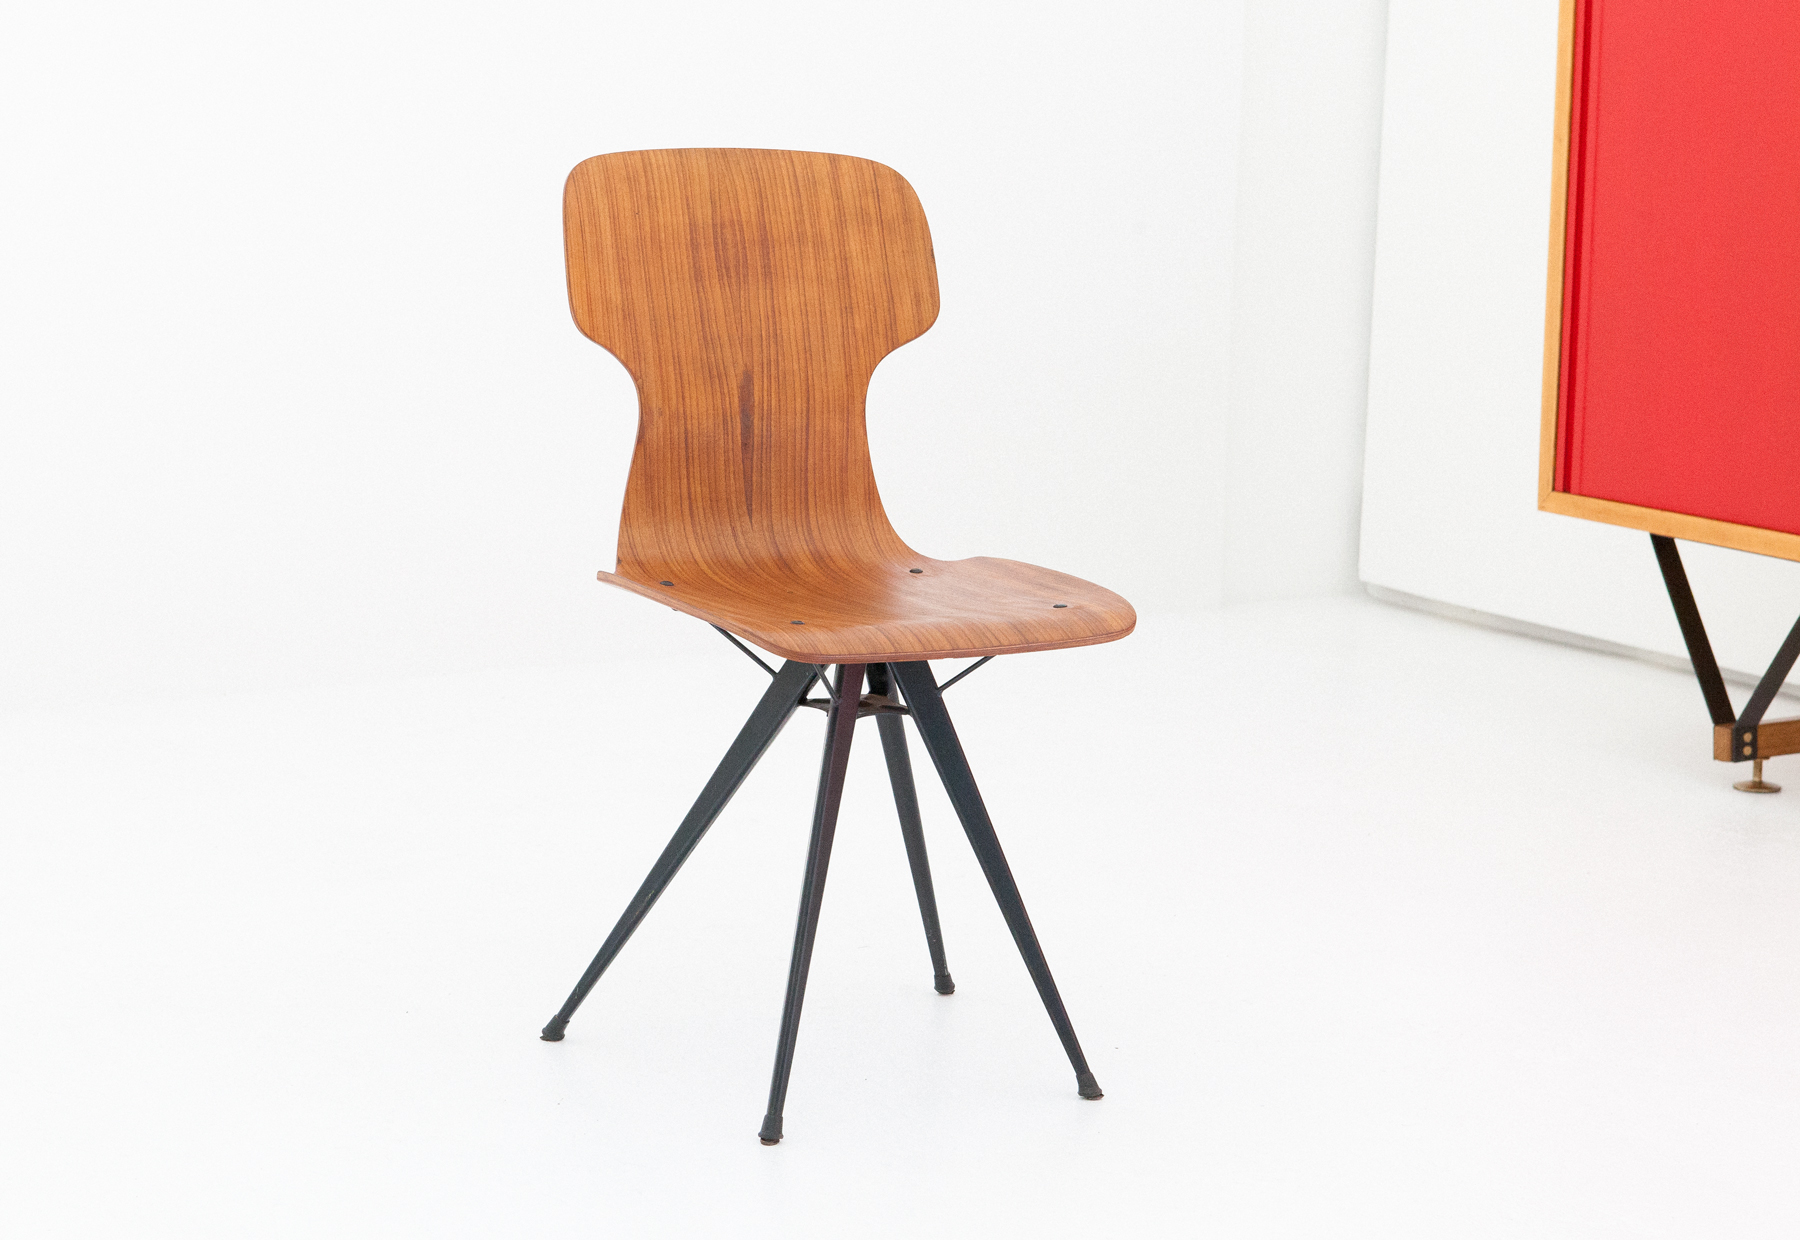 italian-curved-teak-conical-iron-legs-chair-SE283